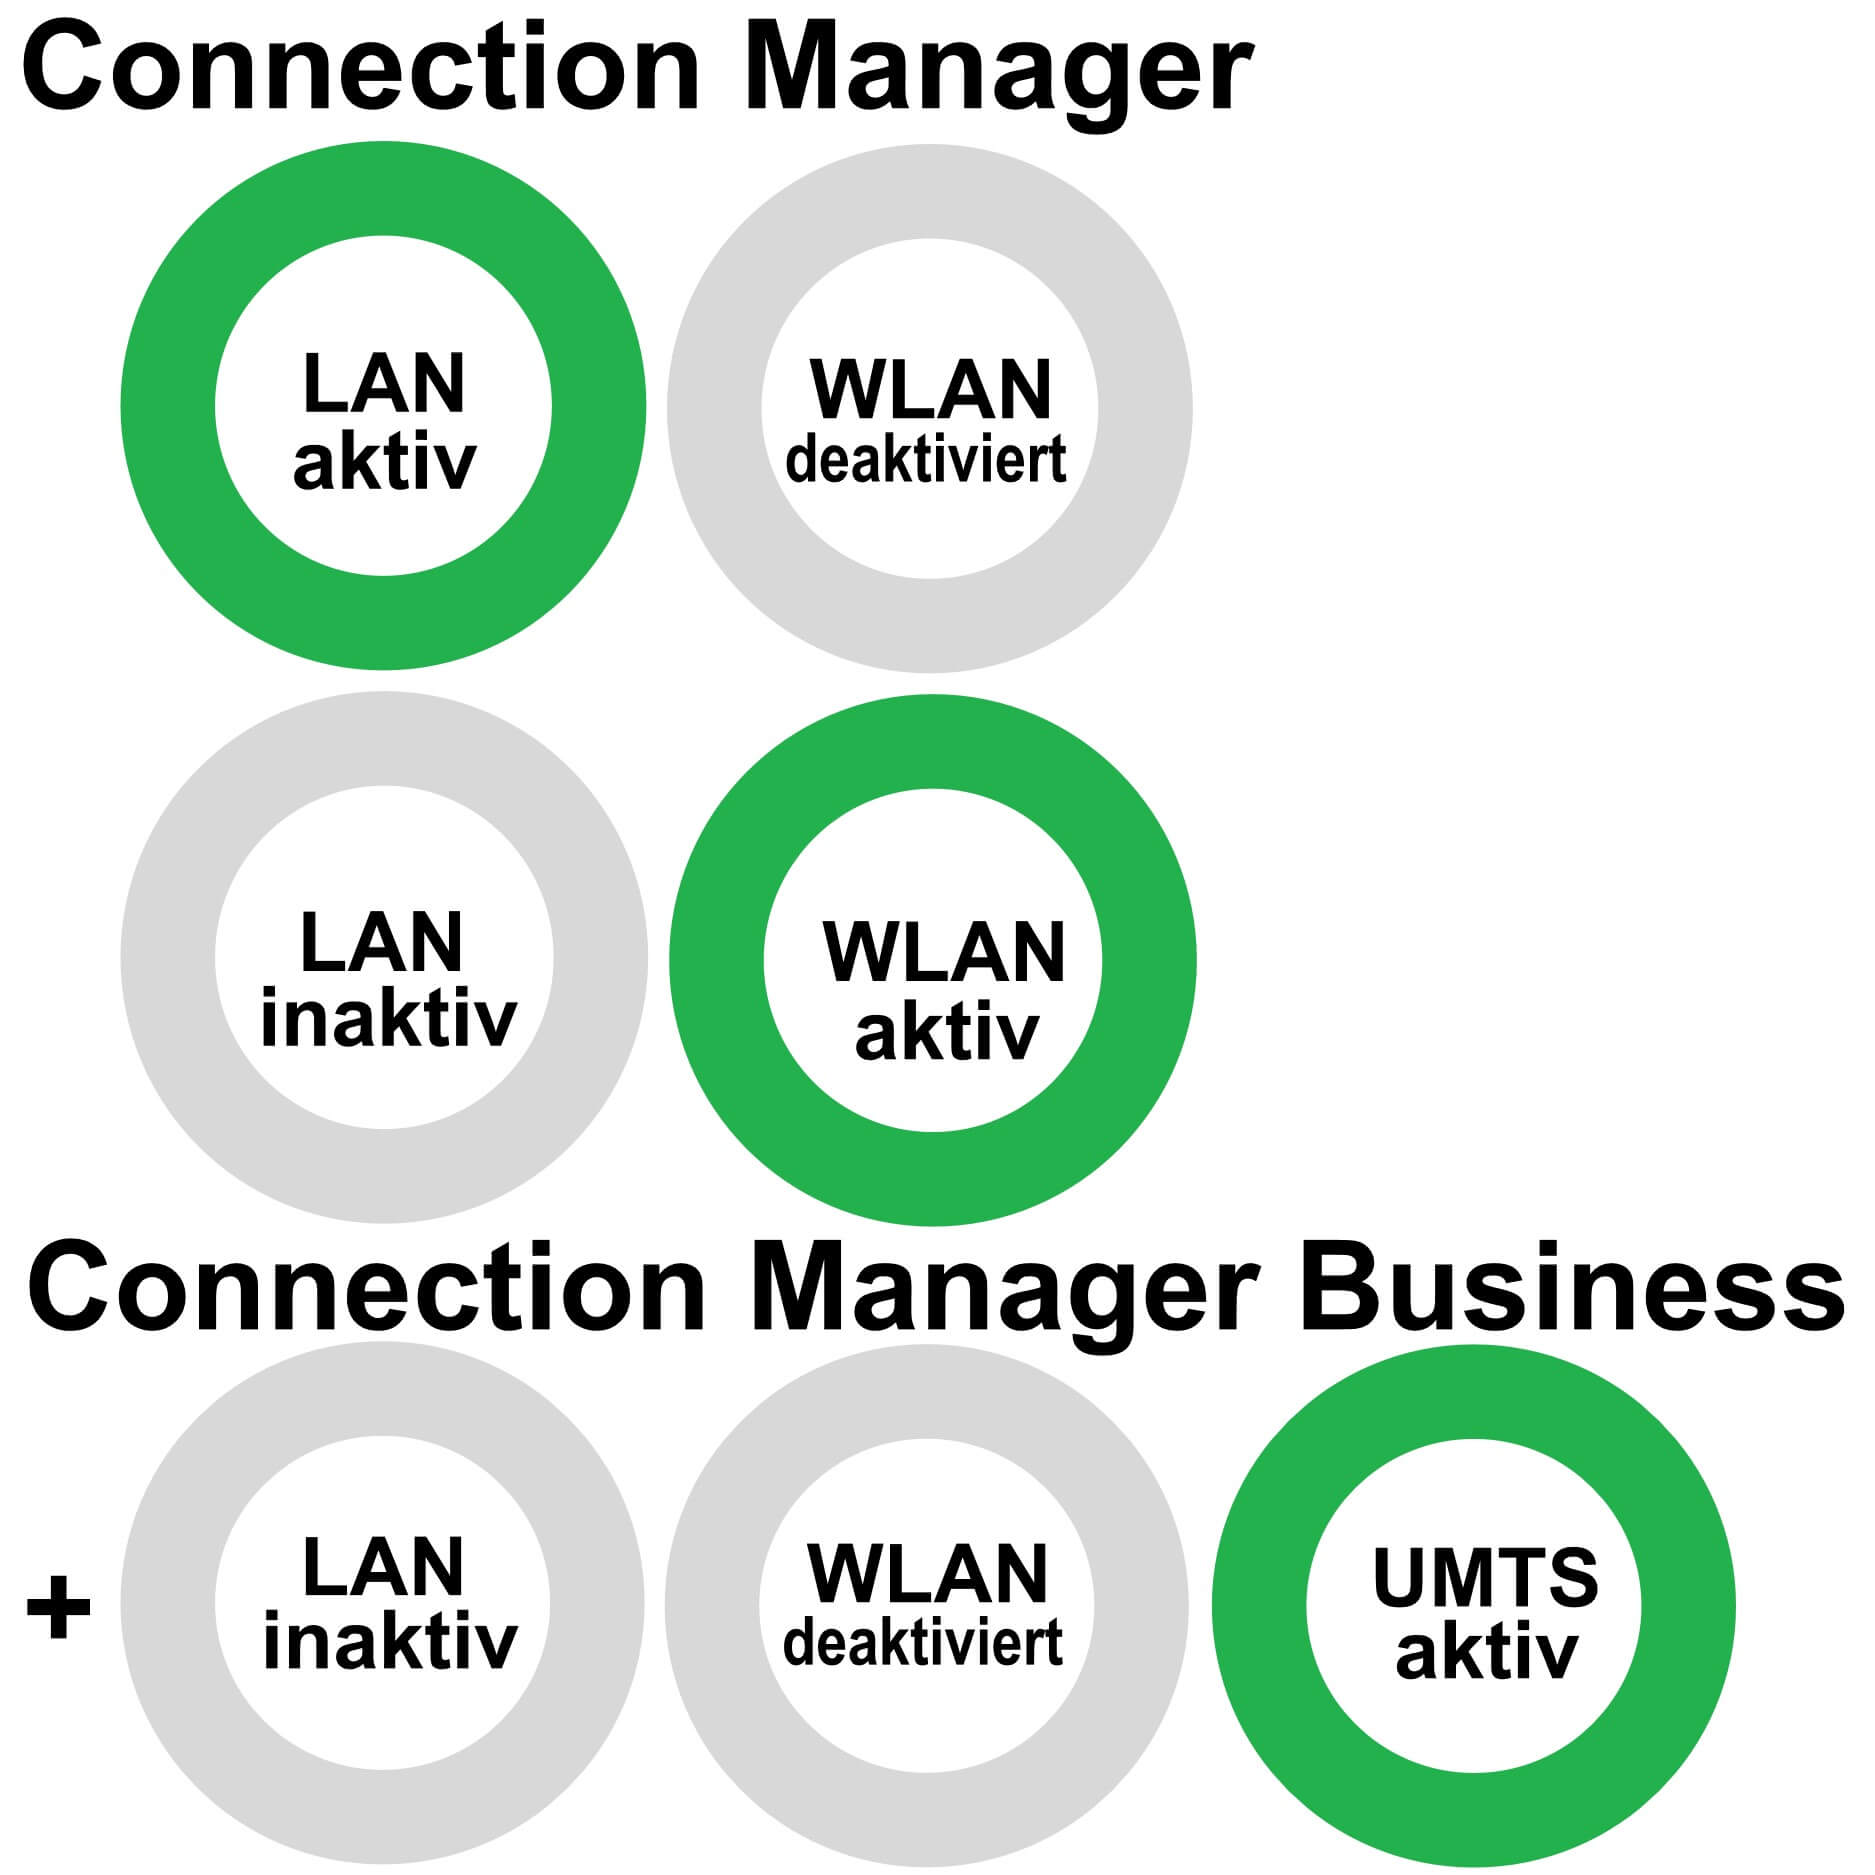 Connection Manager Business